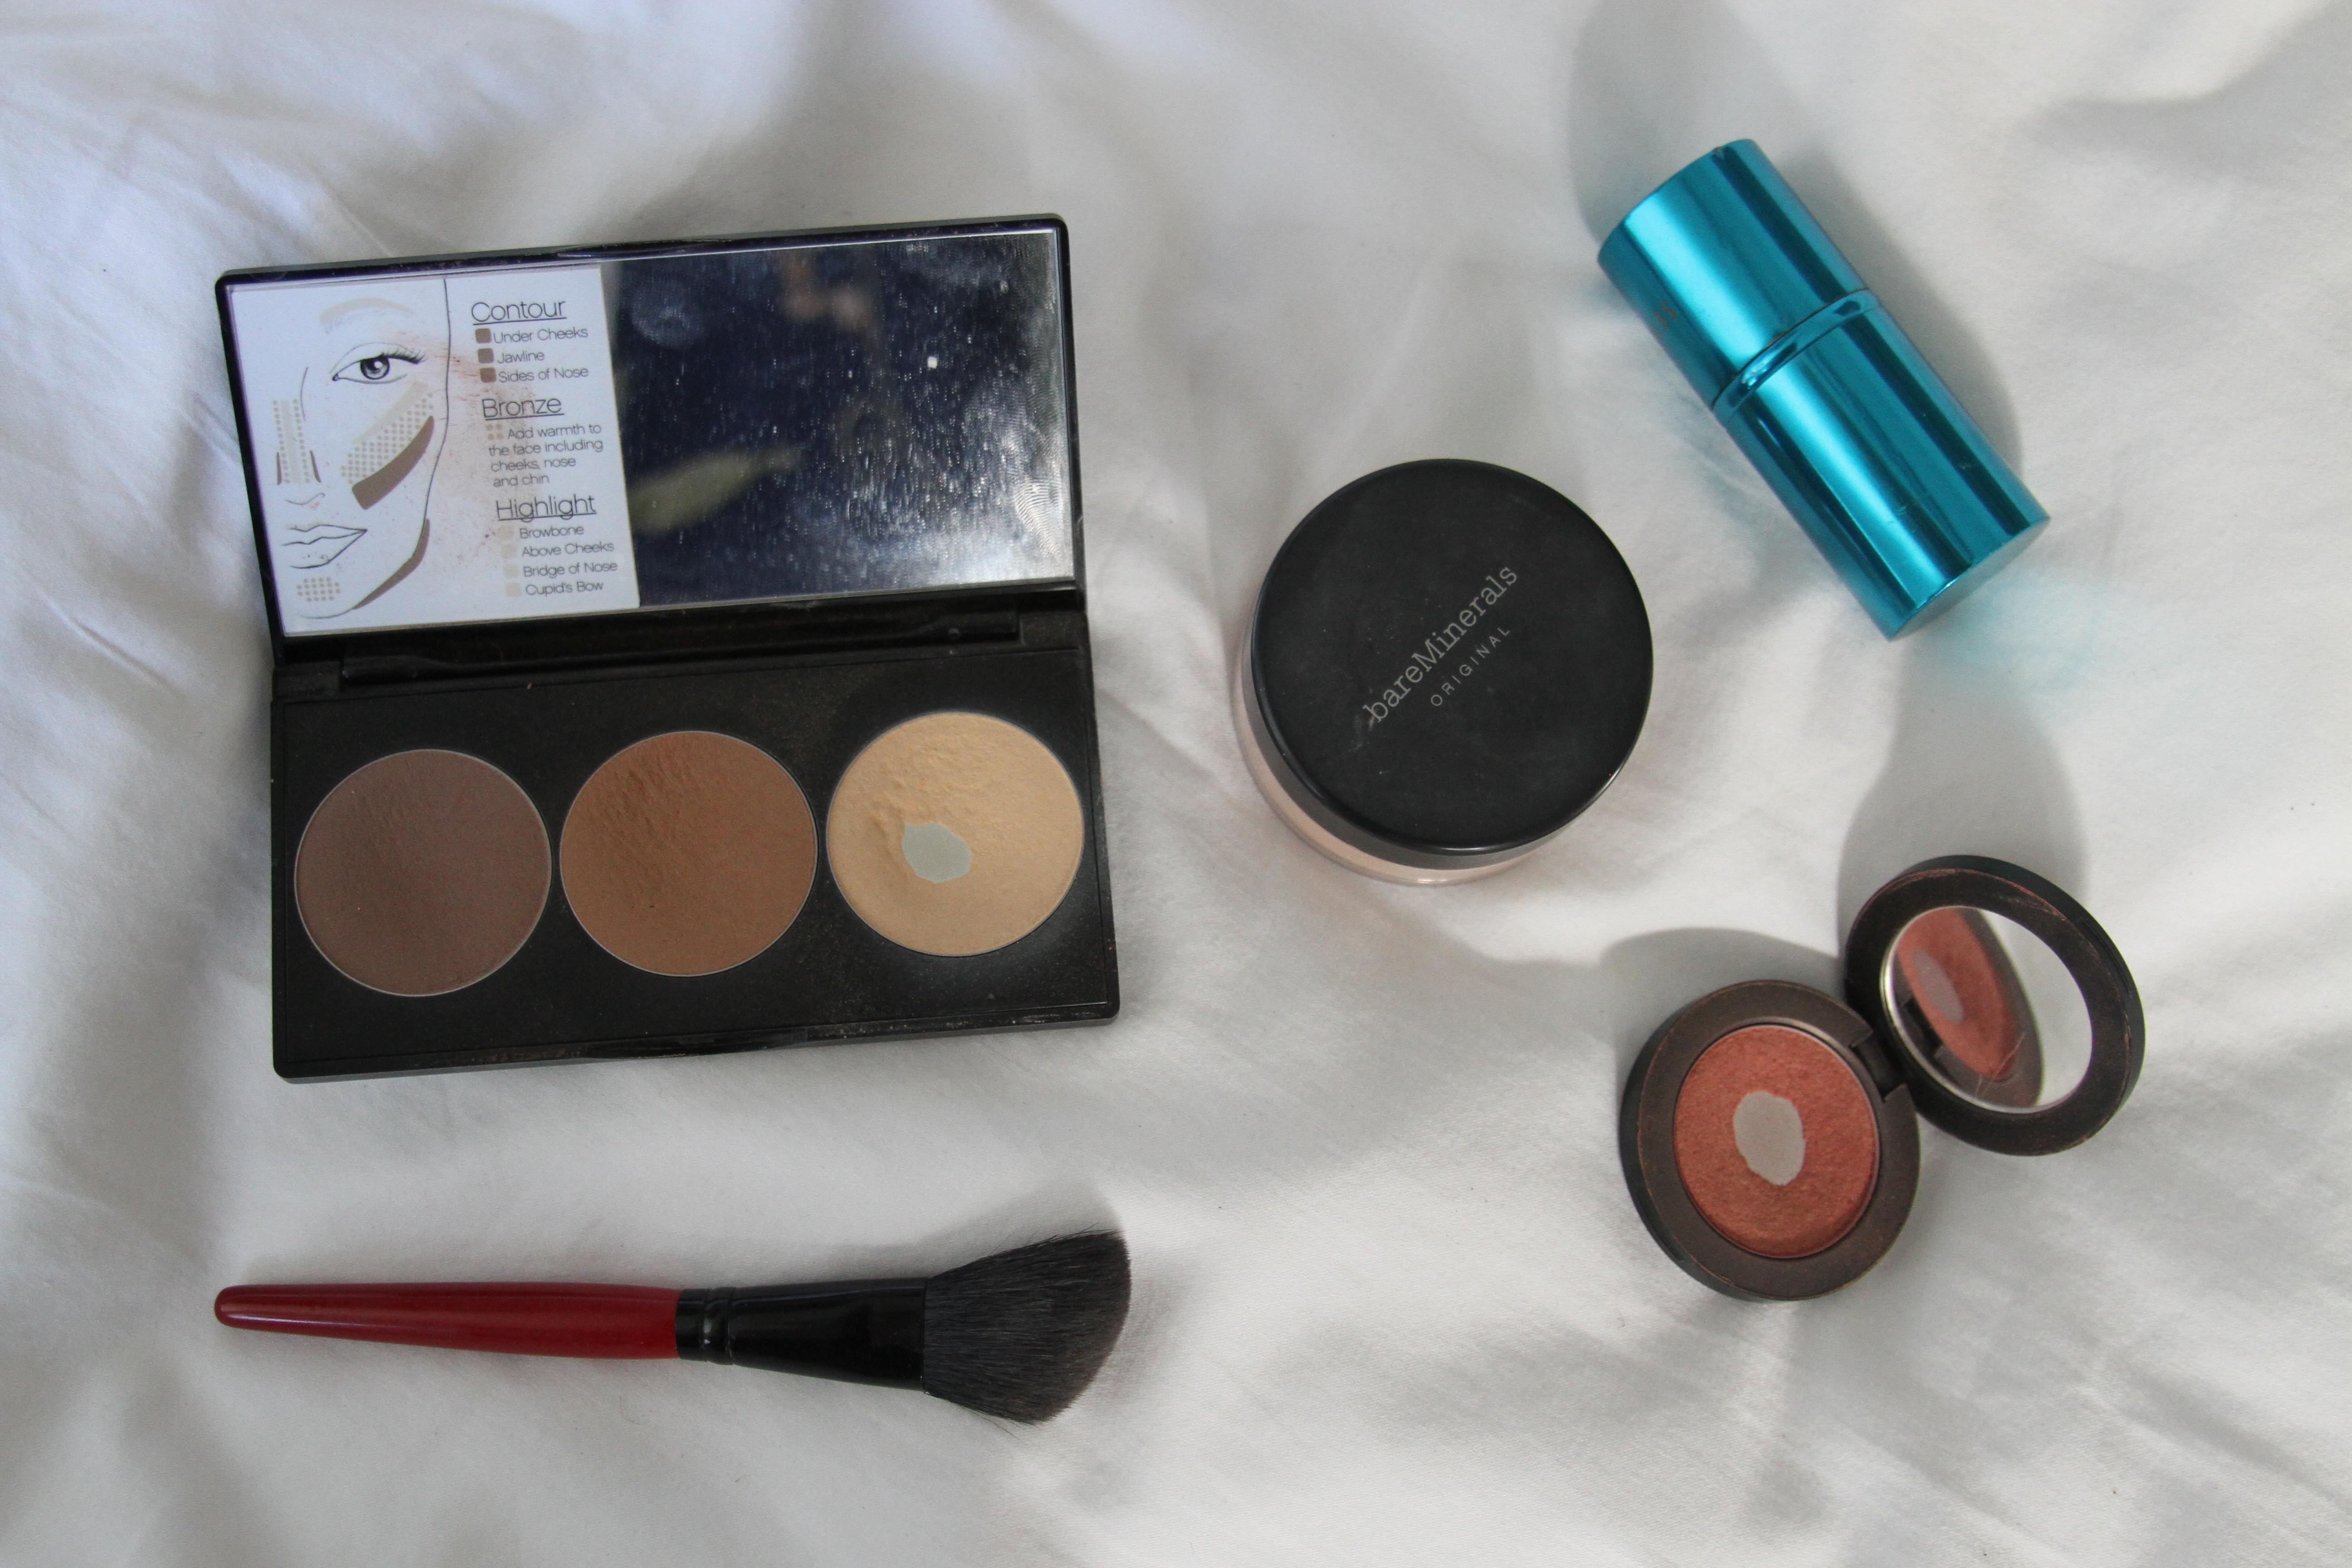 From Top Left): Countouring Kit From Smashbox (this Makeup Artist Who  Was A Drag Queen Recommended This To Me…love), Bareminerals Medium Beige  Powder,